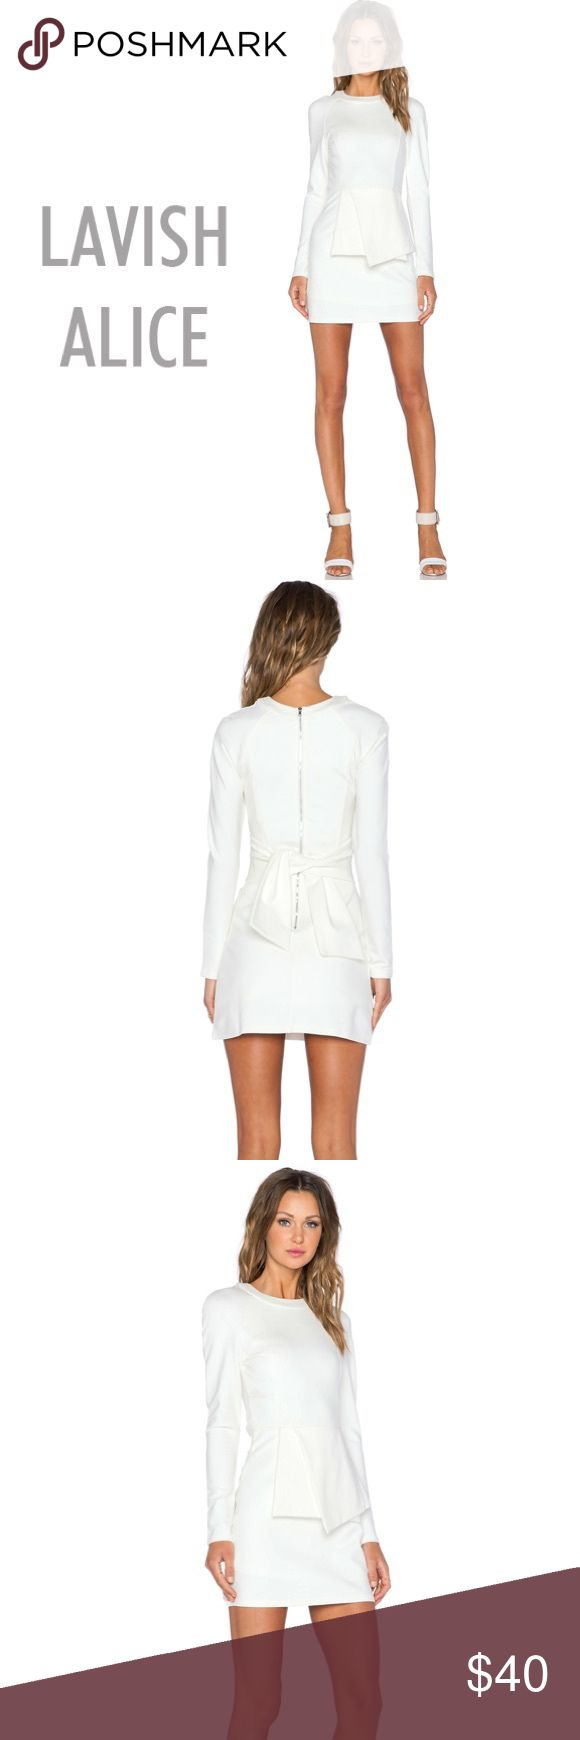 ✨LAVISH ALICE✨ TIE FRONT ✨MINI DRESS✨ in 🌟WHITE🌟 Lavish Alice women's mini dress crafted from a soft cotton blend. The dress falls to mid-thigh length and features a round neckline and long sleeves. Accentuated with a tonal tie at the waist to enhance the design. Secured with a rear zipped fasten. NEVER WORN! NEW WITH TAGS! ✨✨MAKE ME AN OFFER!!✨✨ Lavish Alice Dresses Mini